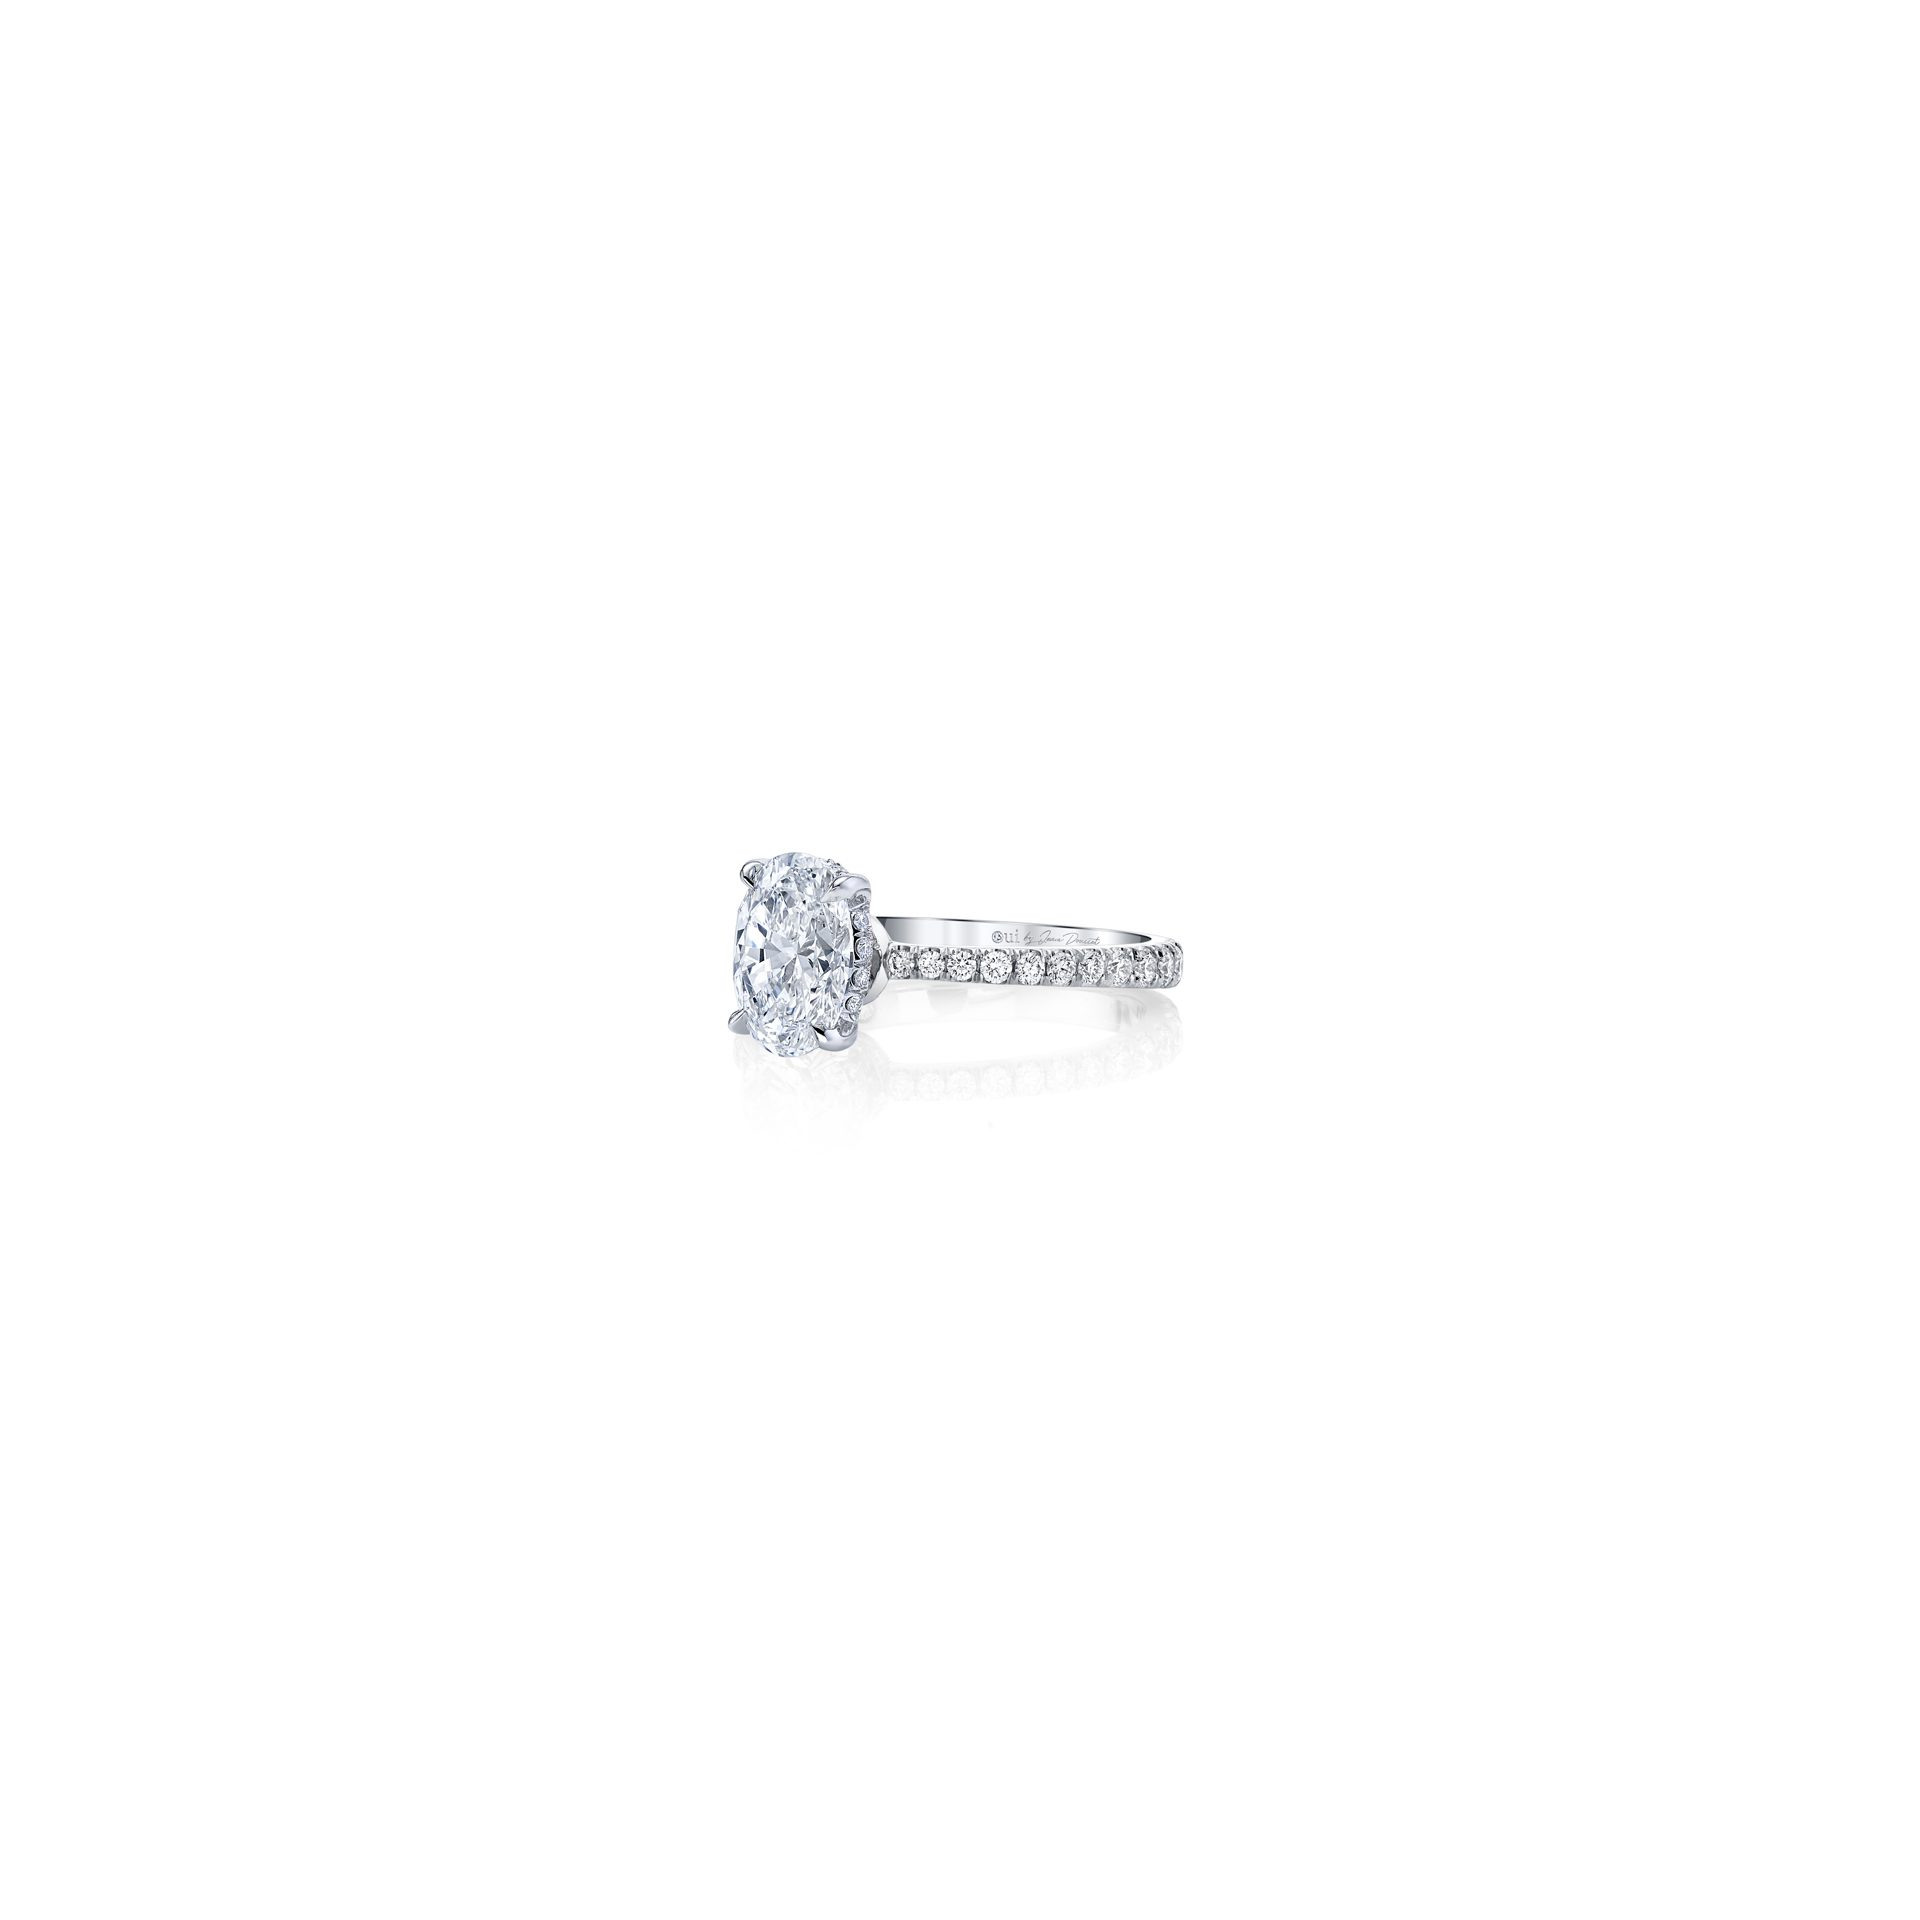 Eloise Oval Solitaire Engagement Ring with a diamond pavé band in 18k White Gold Side View by Oui by Jean Dousset